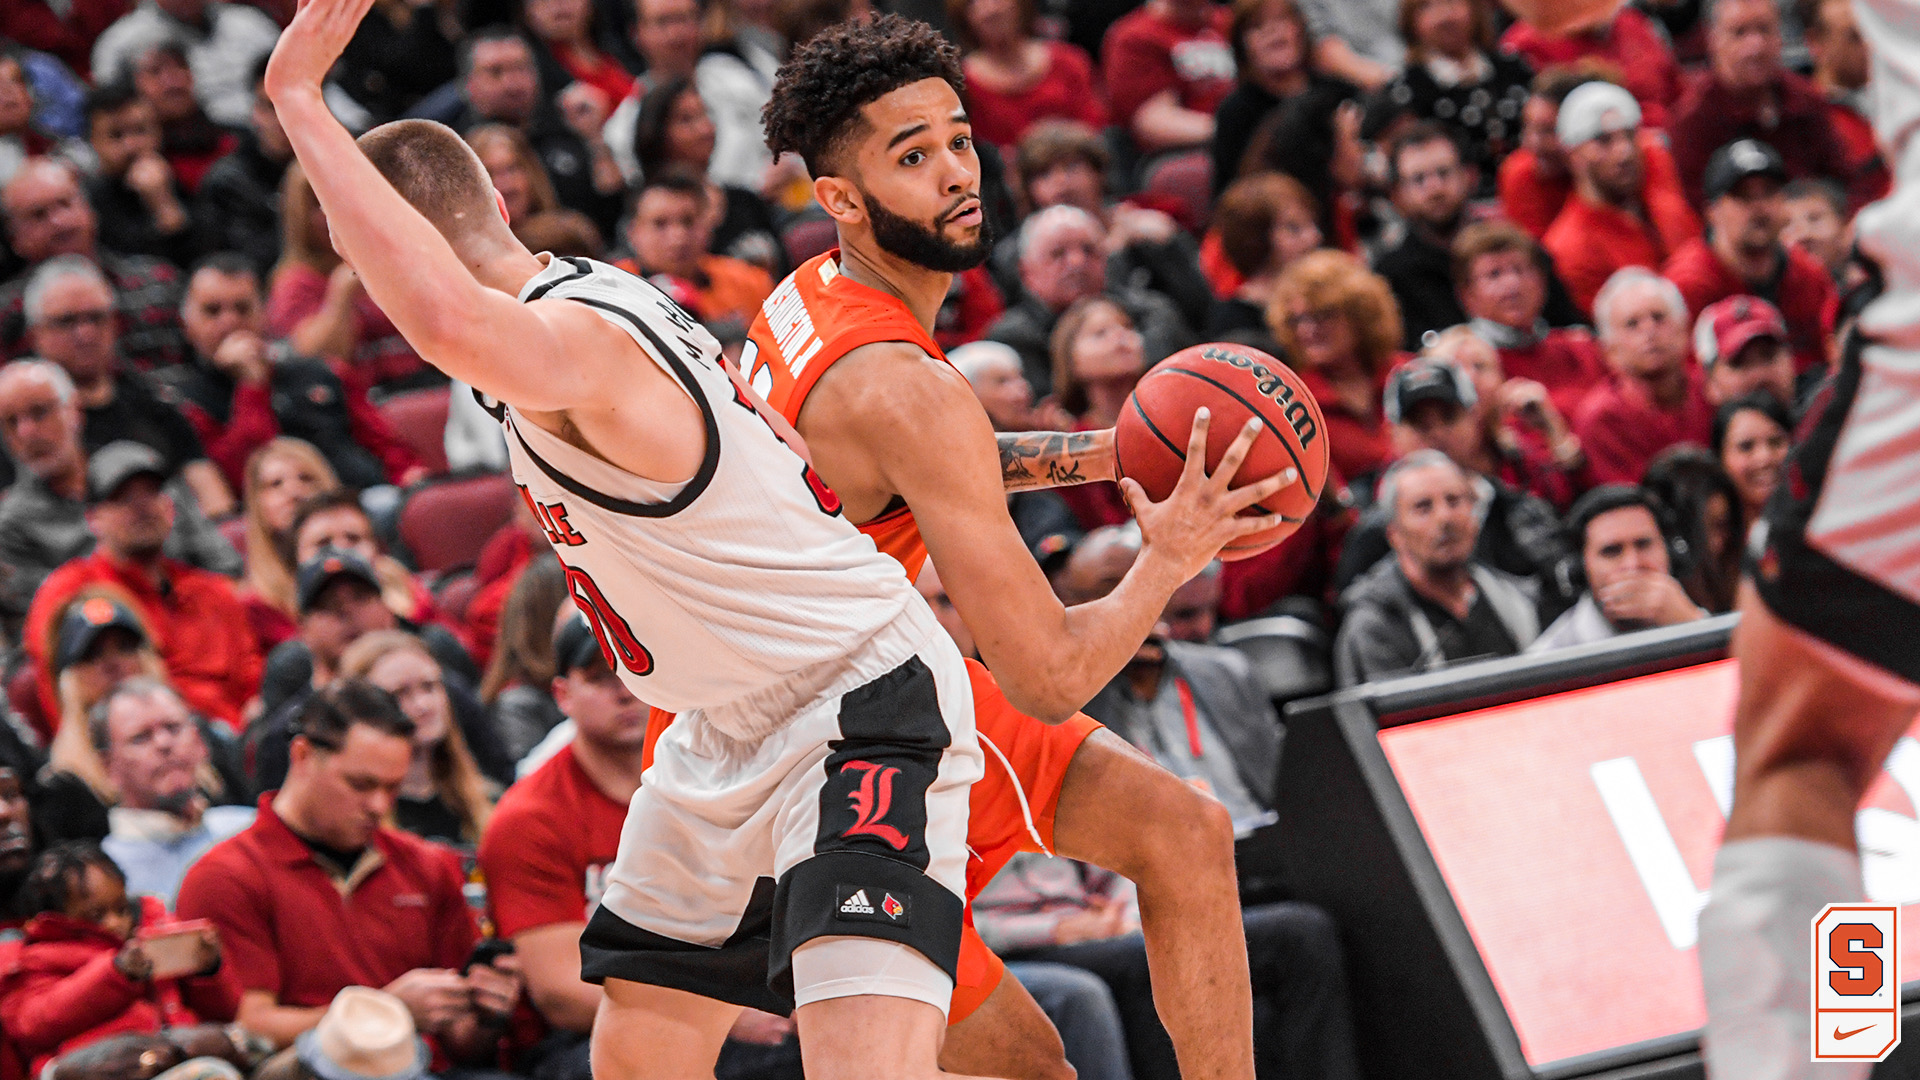 ORANGE GAME DAY: Syracuse hits the road to face Louisville tonight (preview & info)